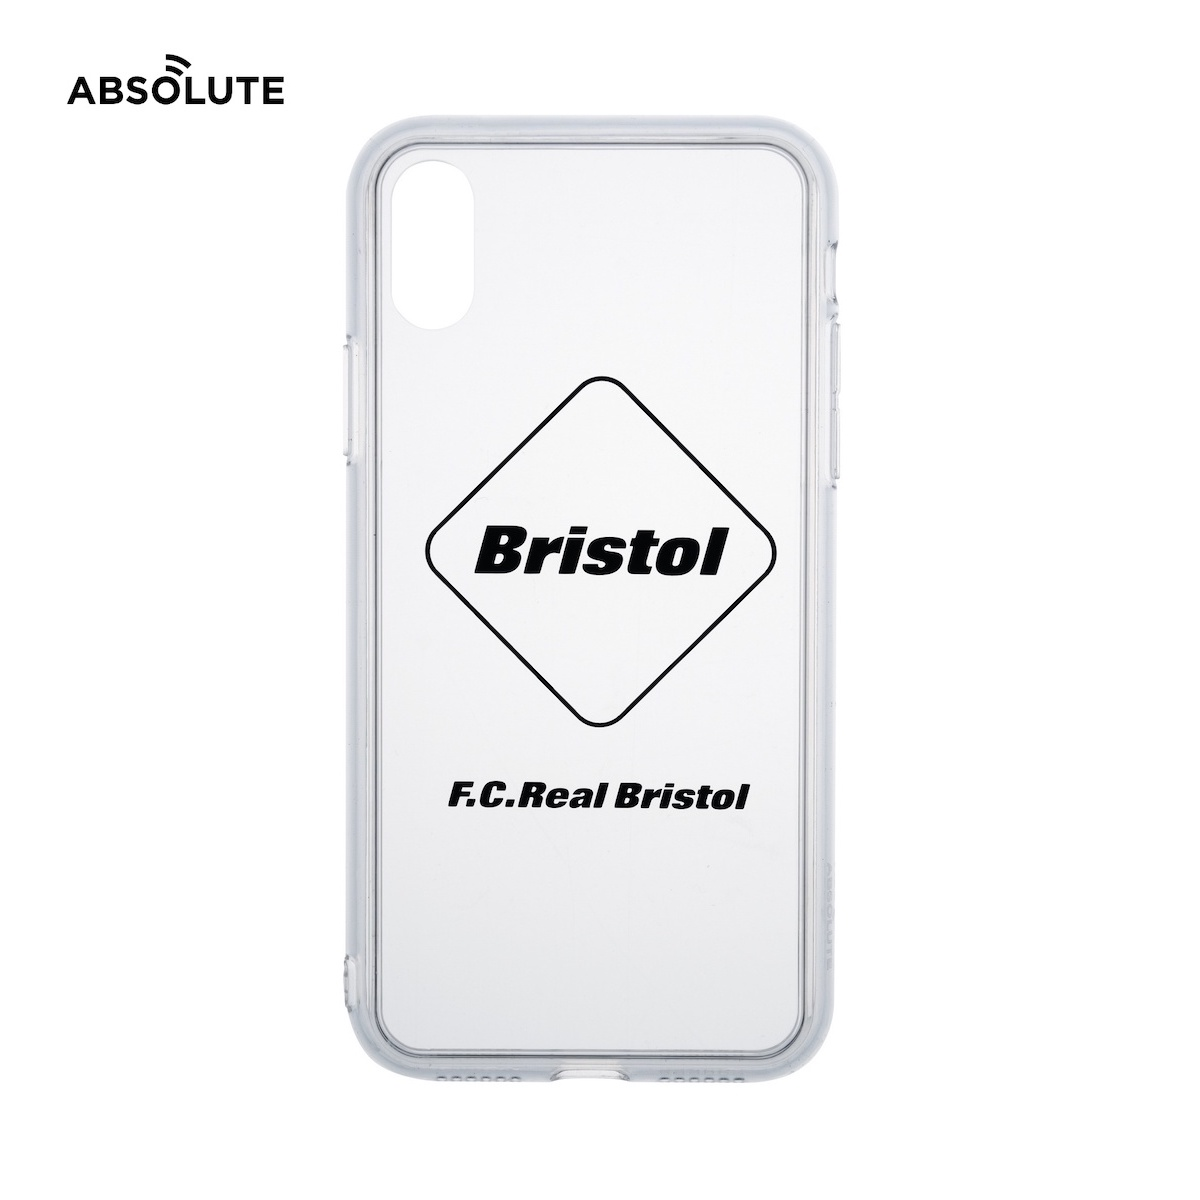 F.C.Real Bristol / ABSOLUTE EMBLEM PHONE CASE for iPhone X / XS (Black)